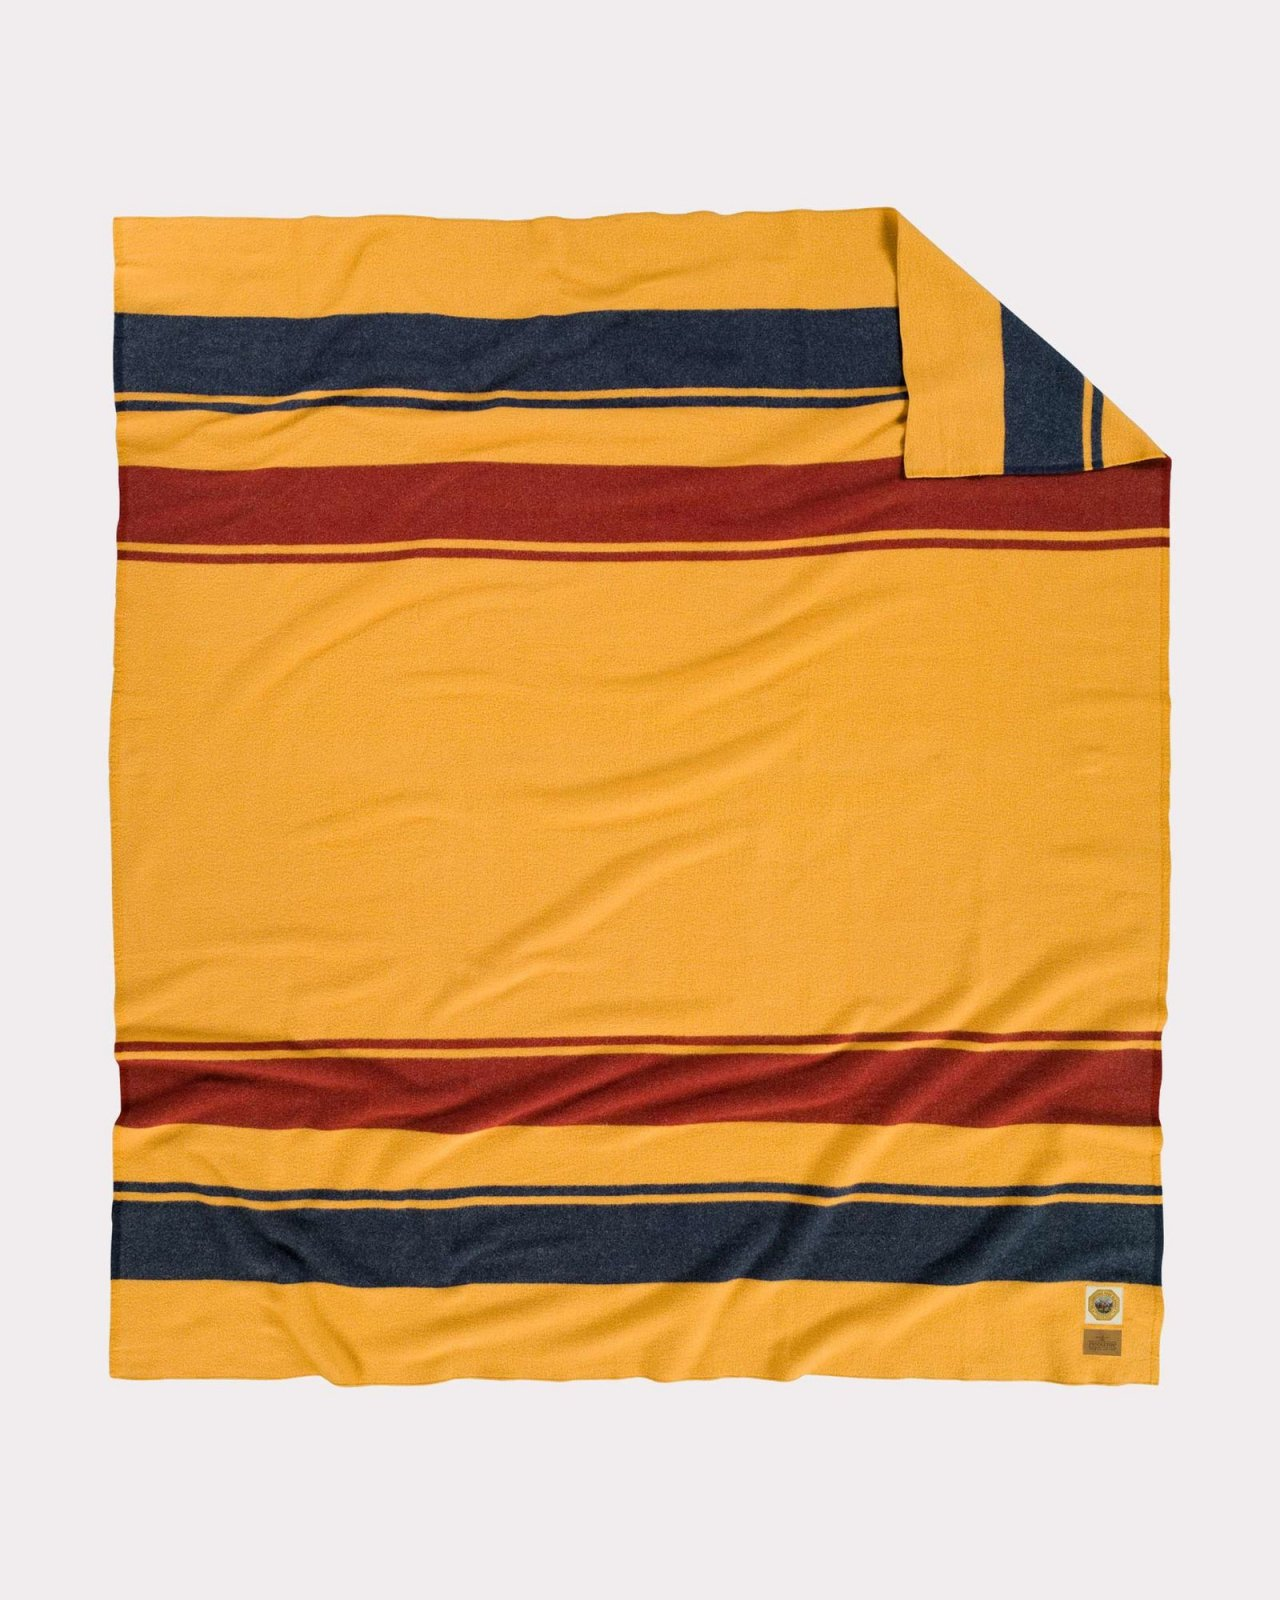 Pendleton National Park Collection Bed Blanket